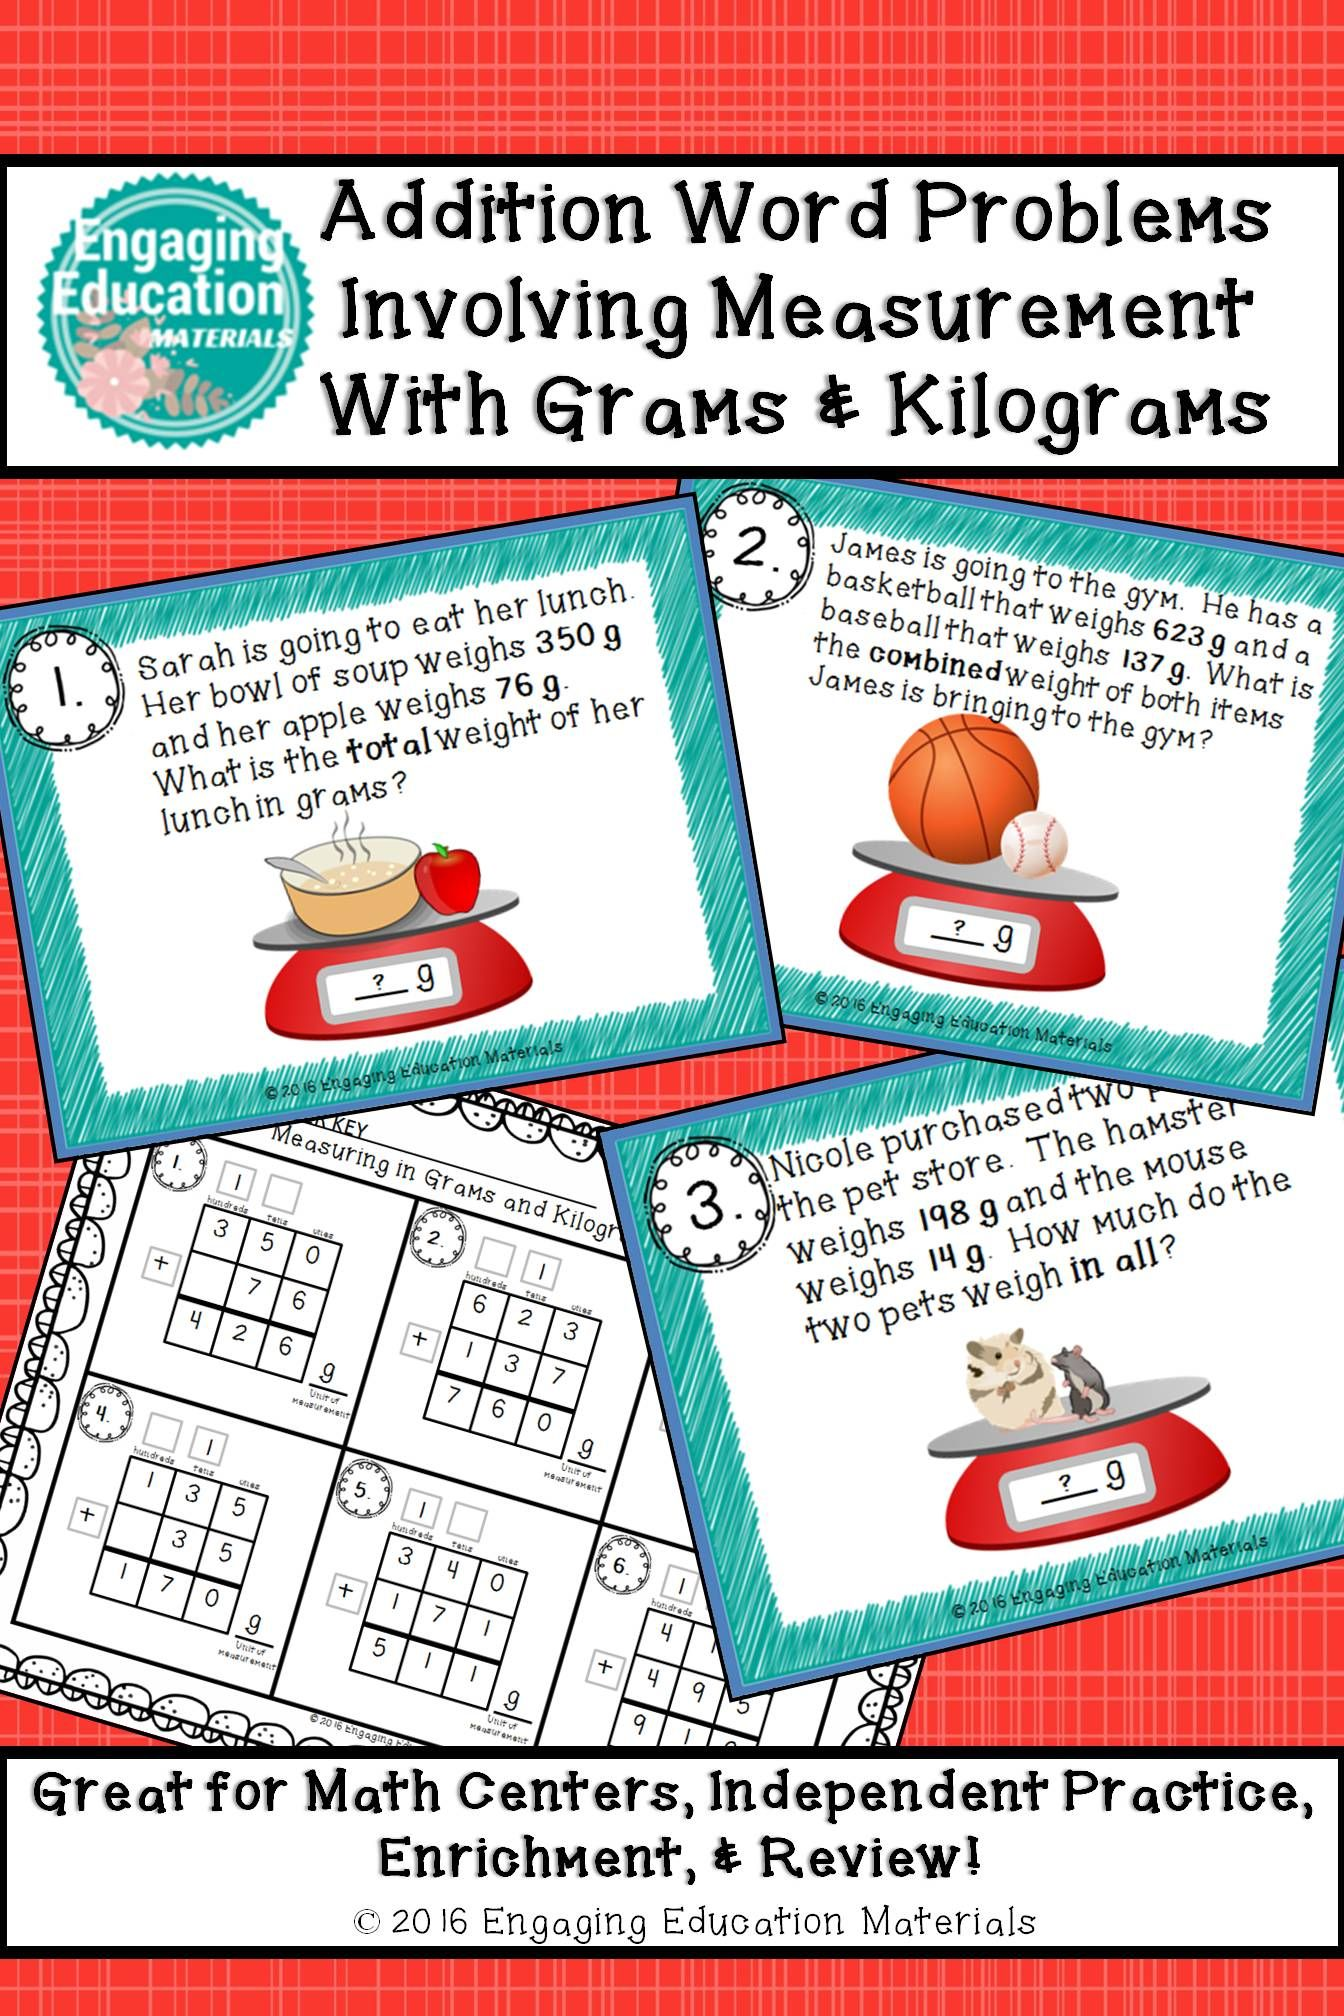 Addition Word Problems Involving Measurement With Grams